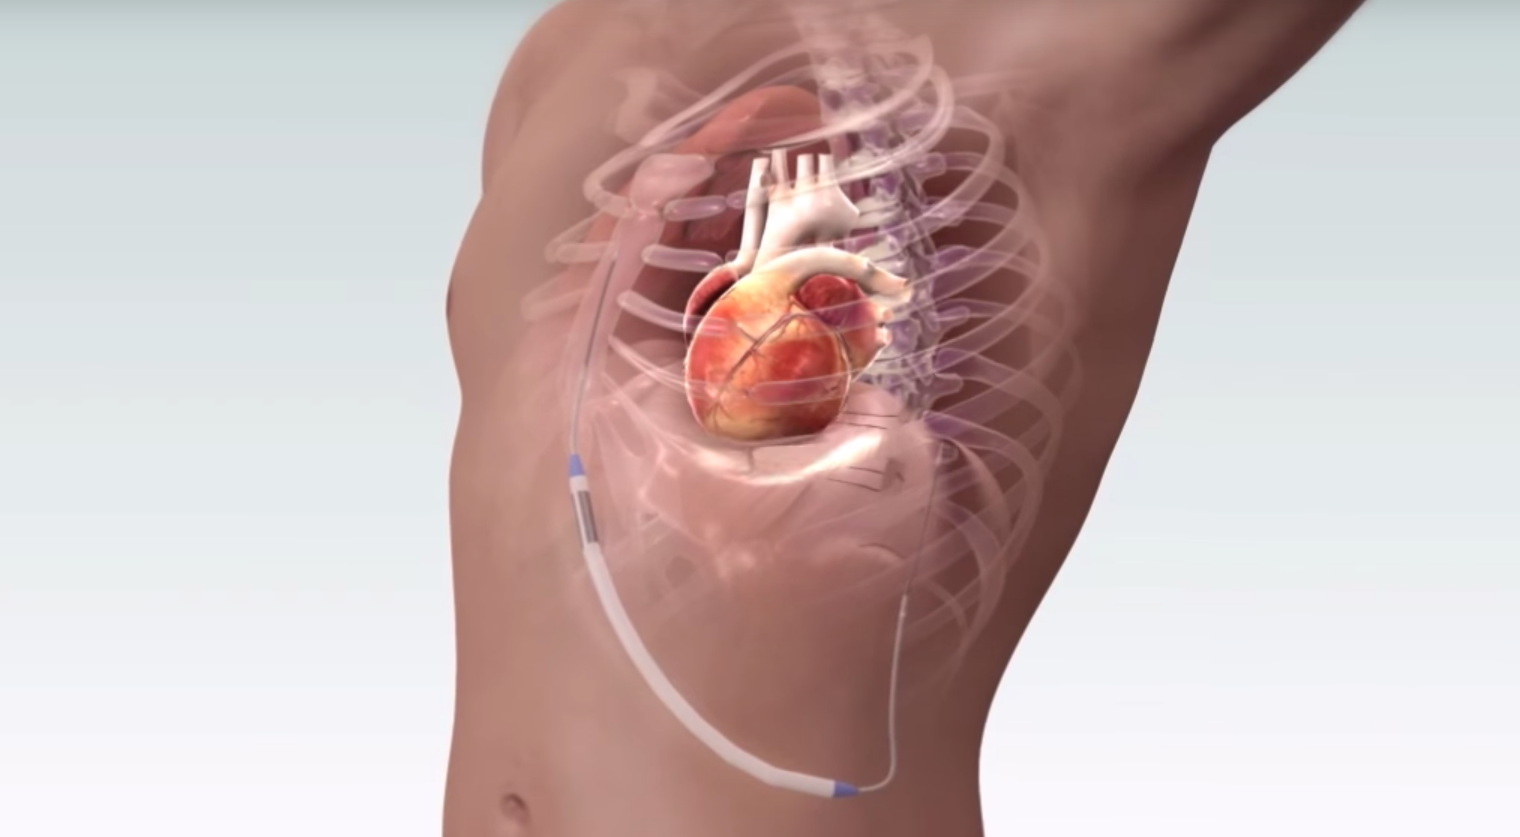 Electrophysiology Devices Market to Flourish with an Impressive CAGR during 2021-2031